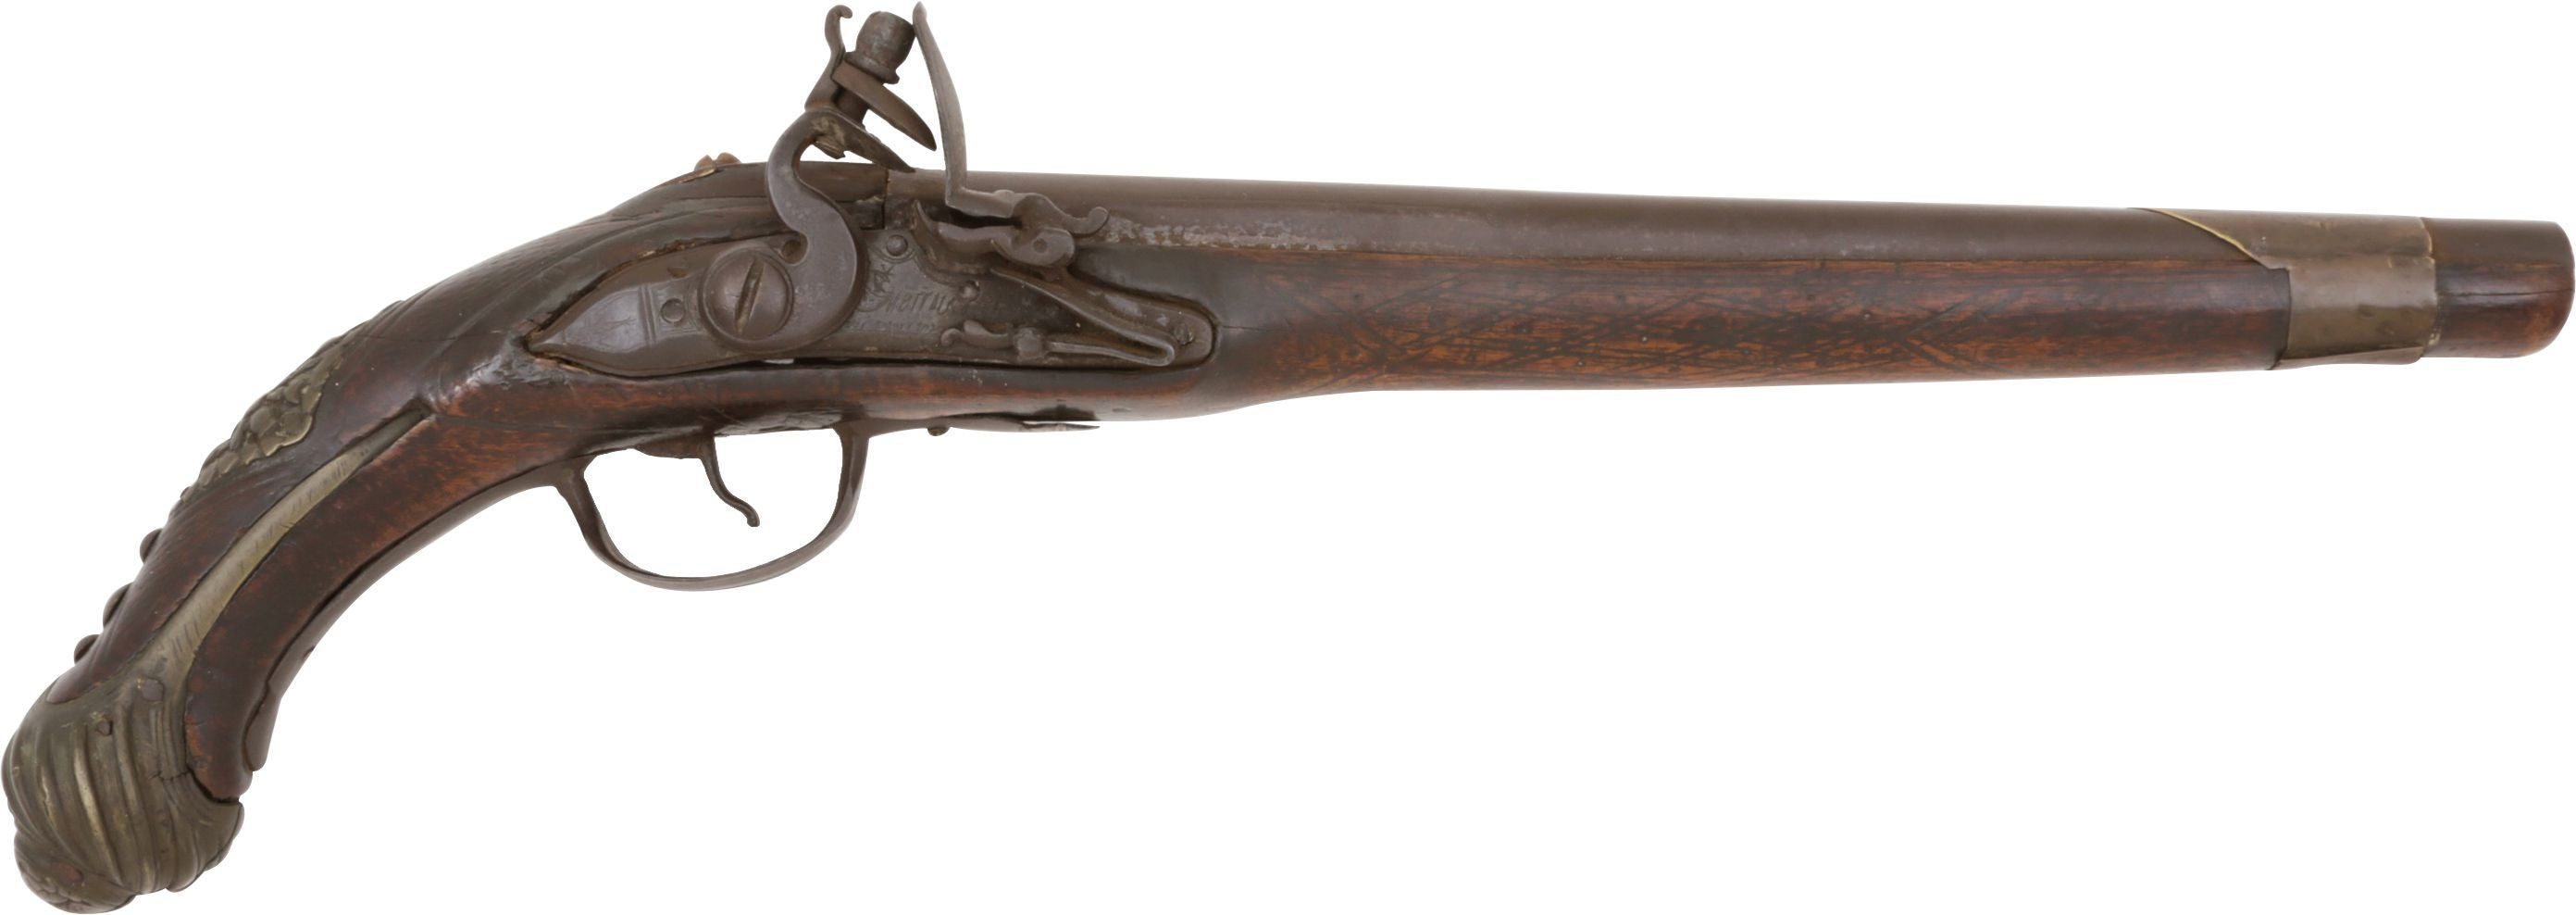 OTTOMAN TURKISH FLINTLOCK PISTOL C.1800 - Fagan Arms